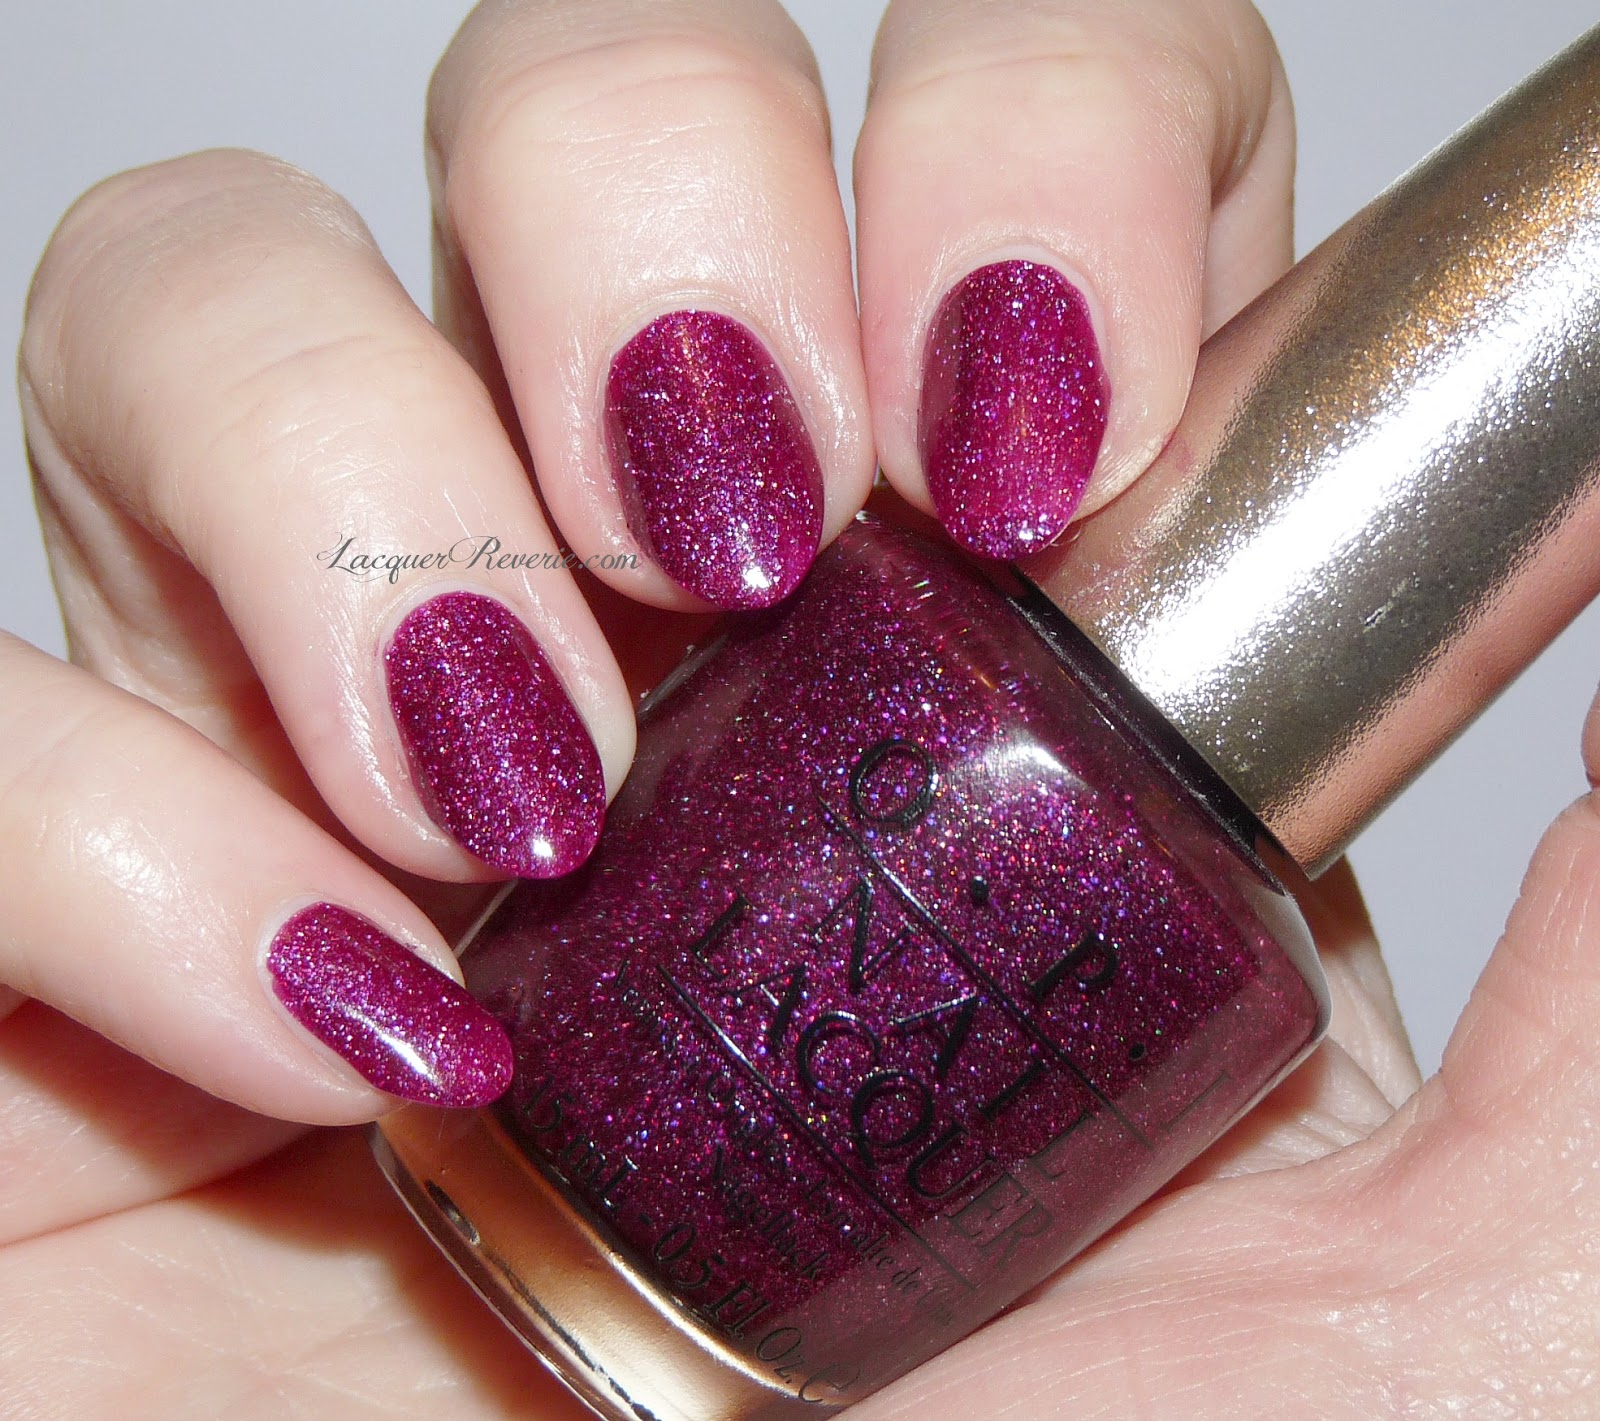 Lacquer Reverie Opi Designer Series Extravagance Lapis And Mystery